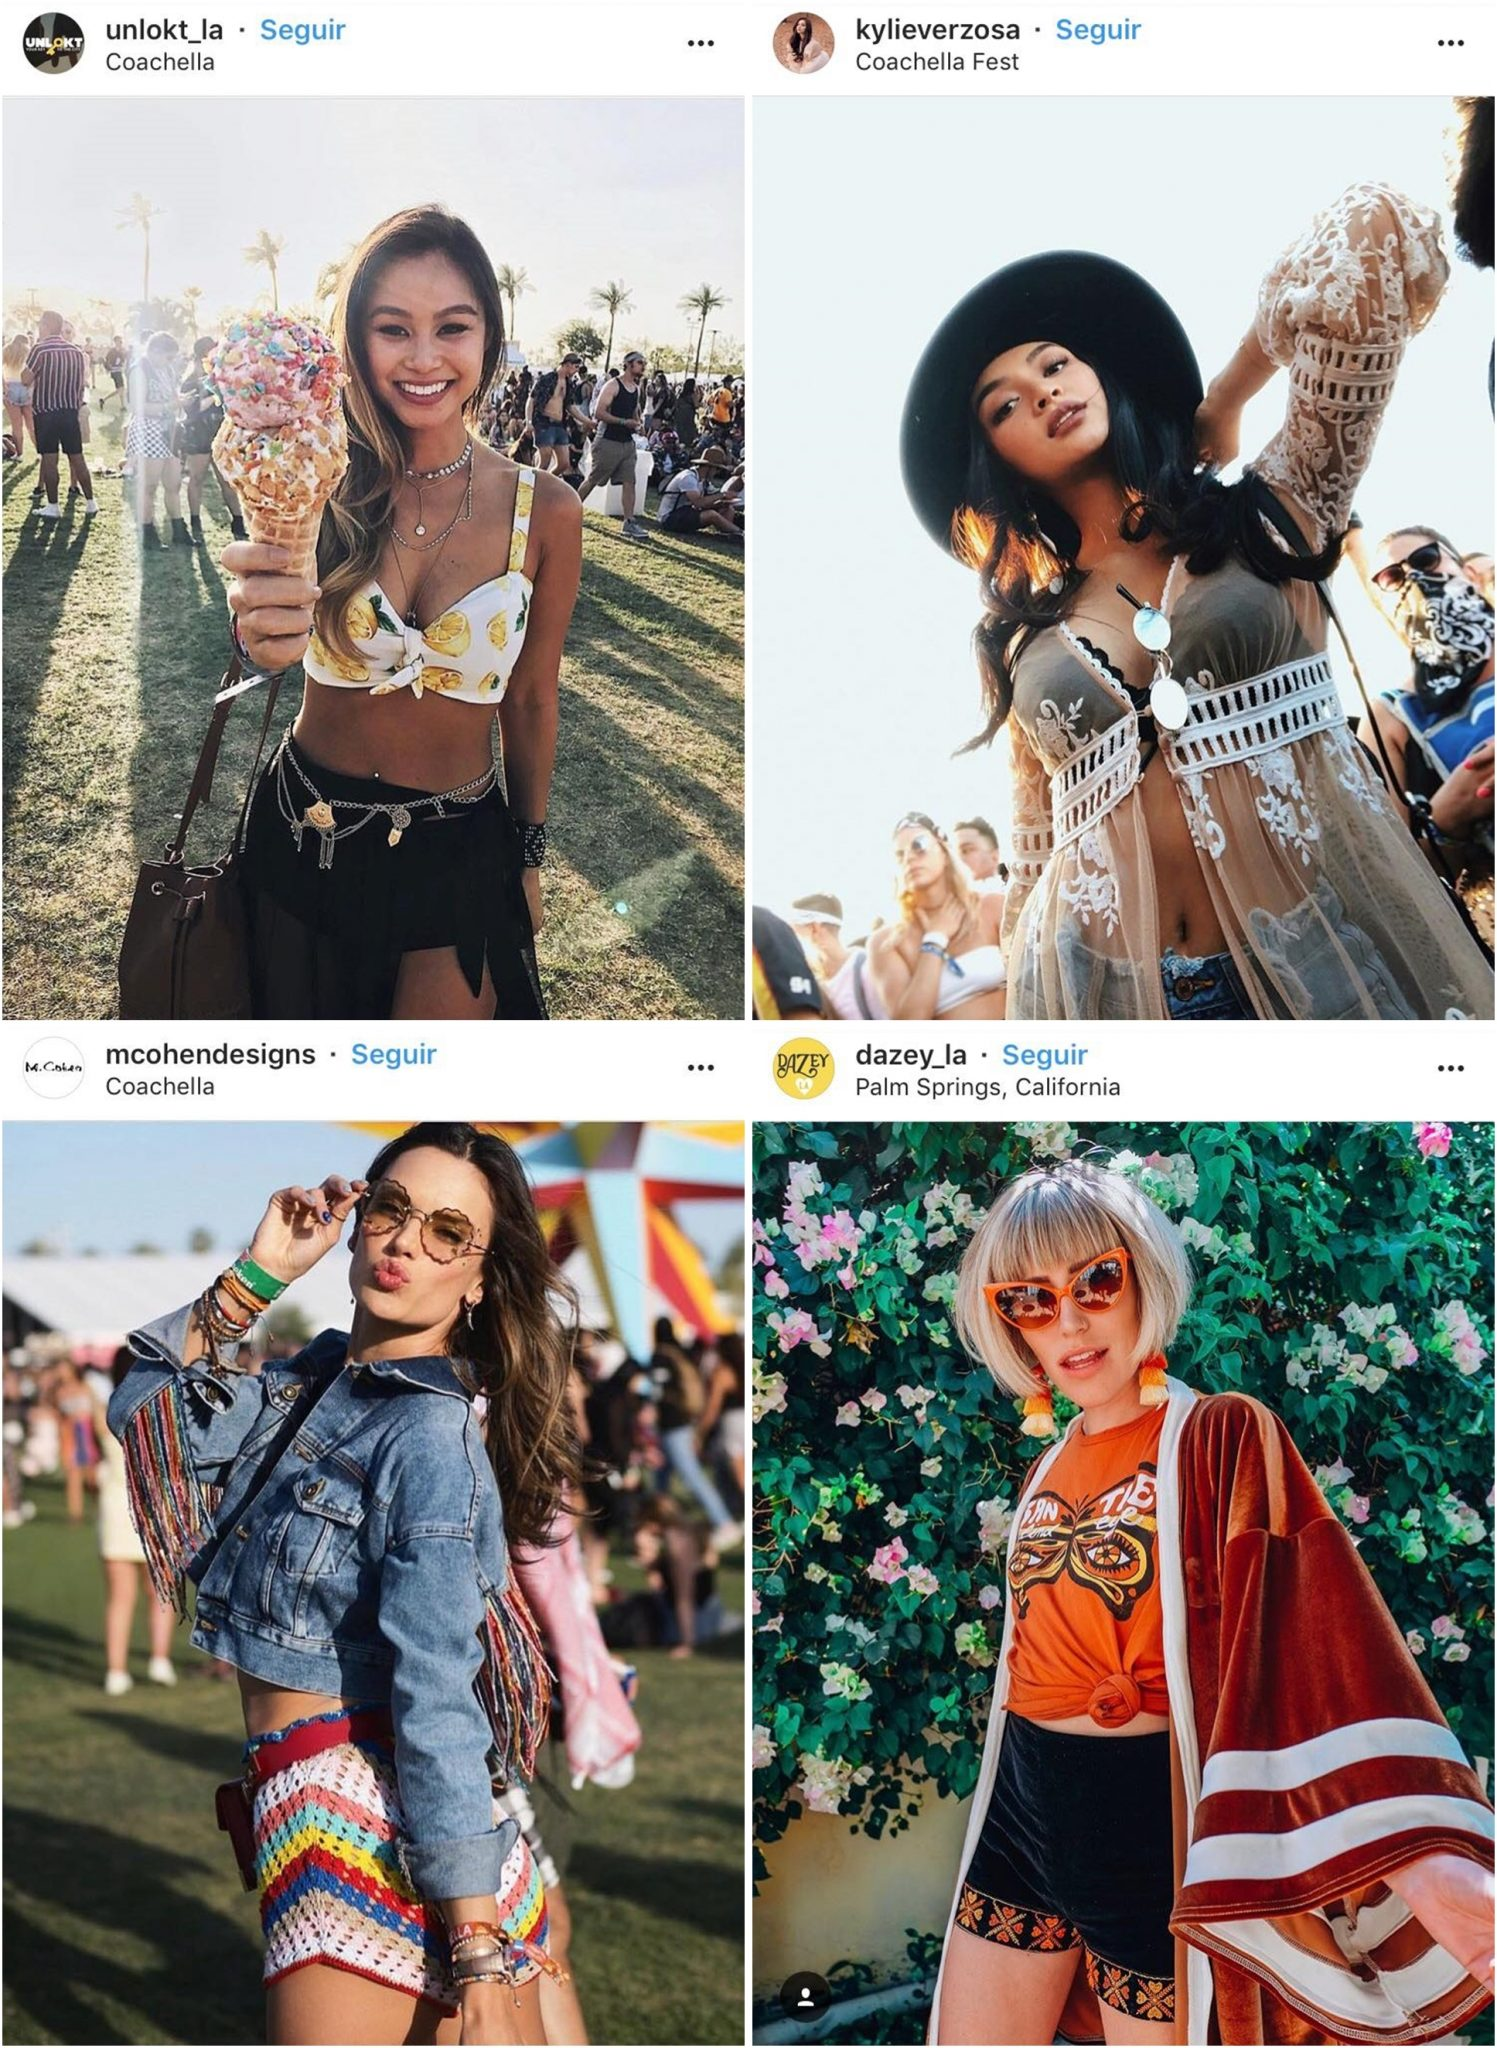 Galera estilosa no Coachella - Os Looks Mais Cheios de Estilo do Coachella